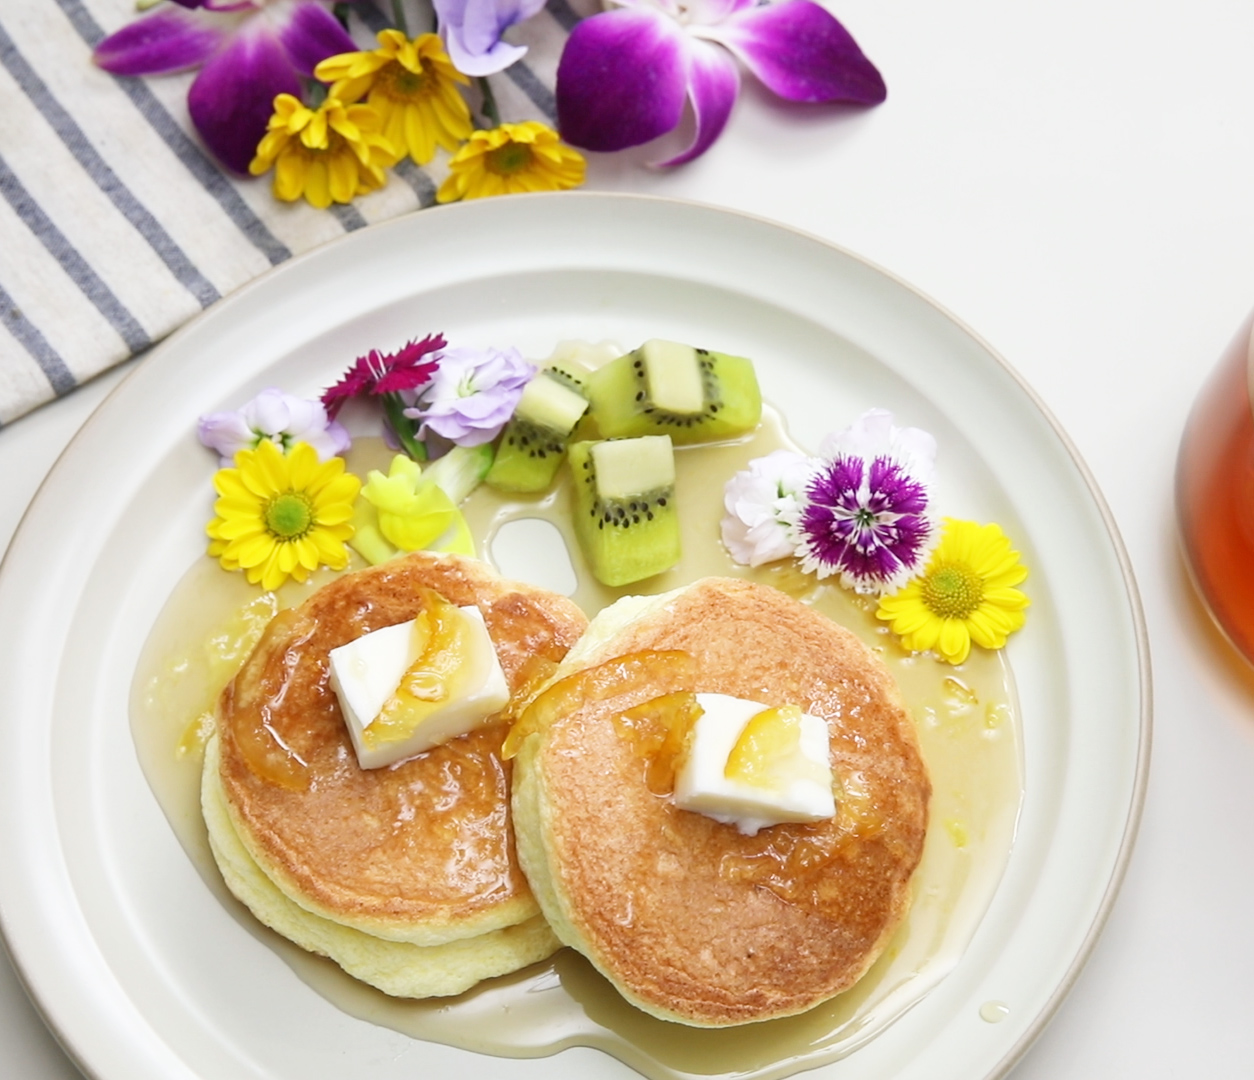 souffle pancakes with yuja syrup